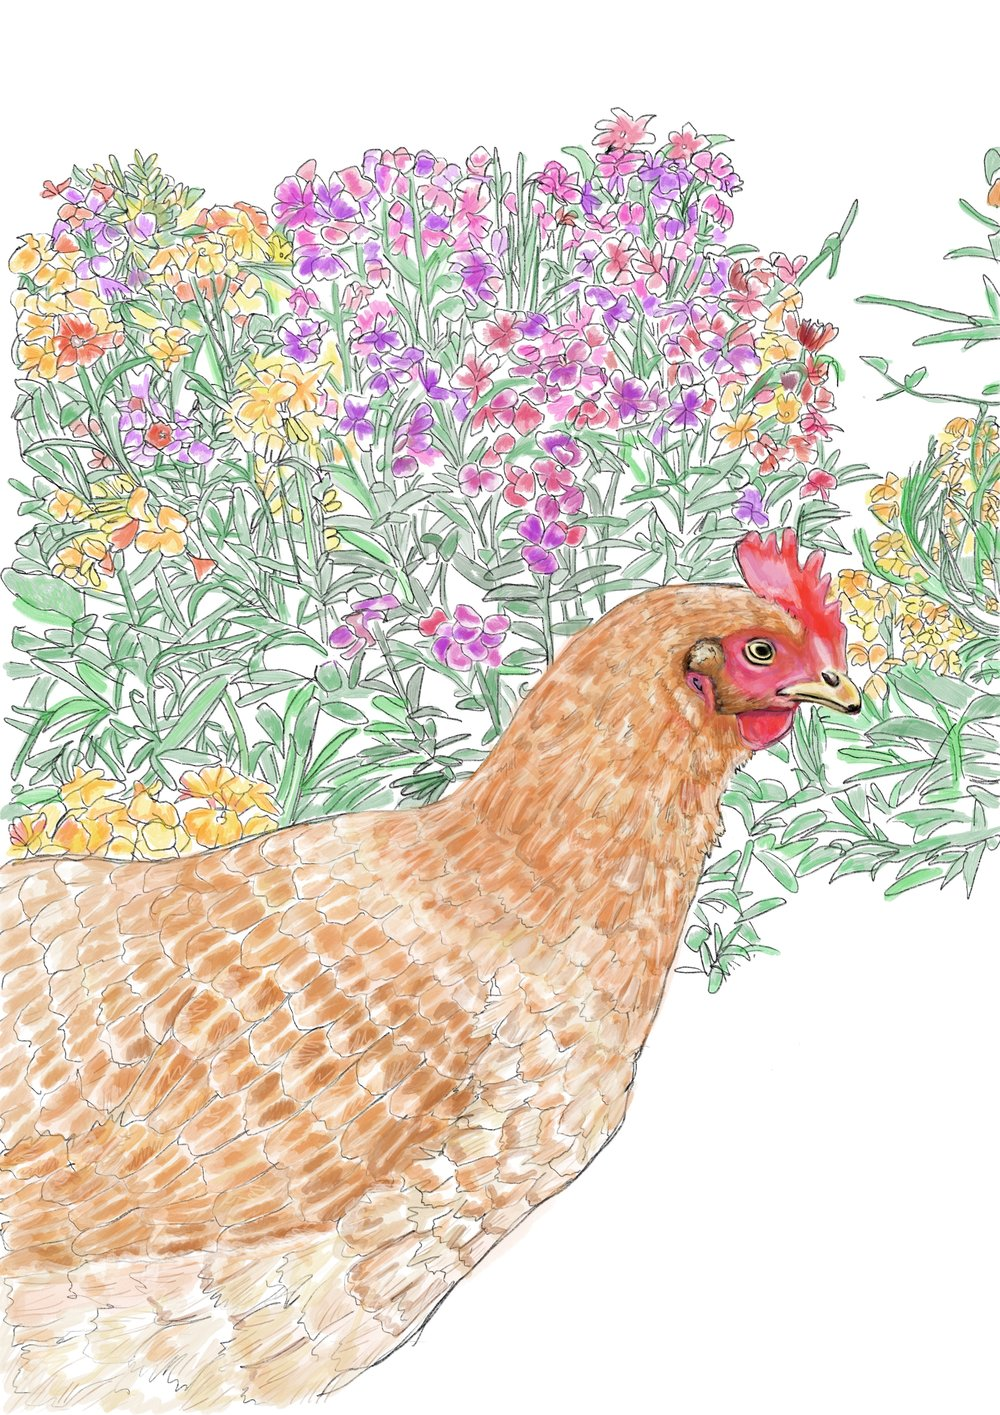 CJ a much loved ex battery Hen who belonged to Rachel of @thegoodlifeainteasy blog, this portrait was handrawn using an apple pencil and procreate on an ipad.